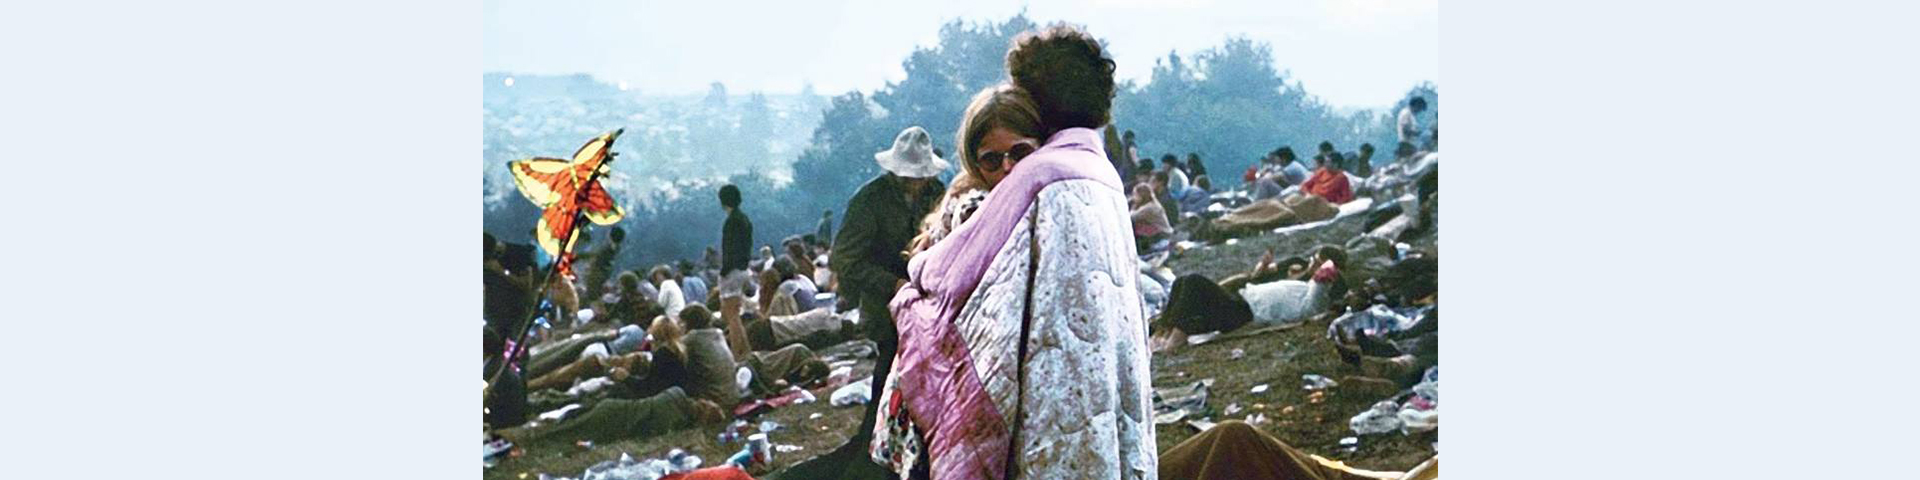 Woodstock, One Night of Peace and Music - Frank Lammers e.a.